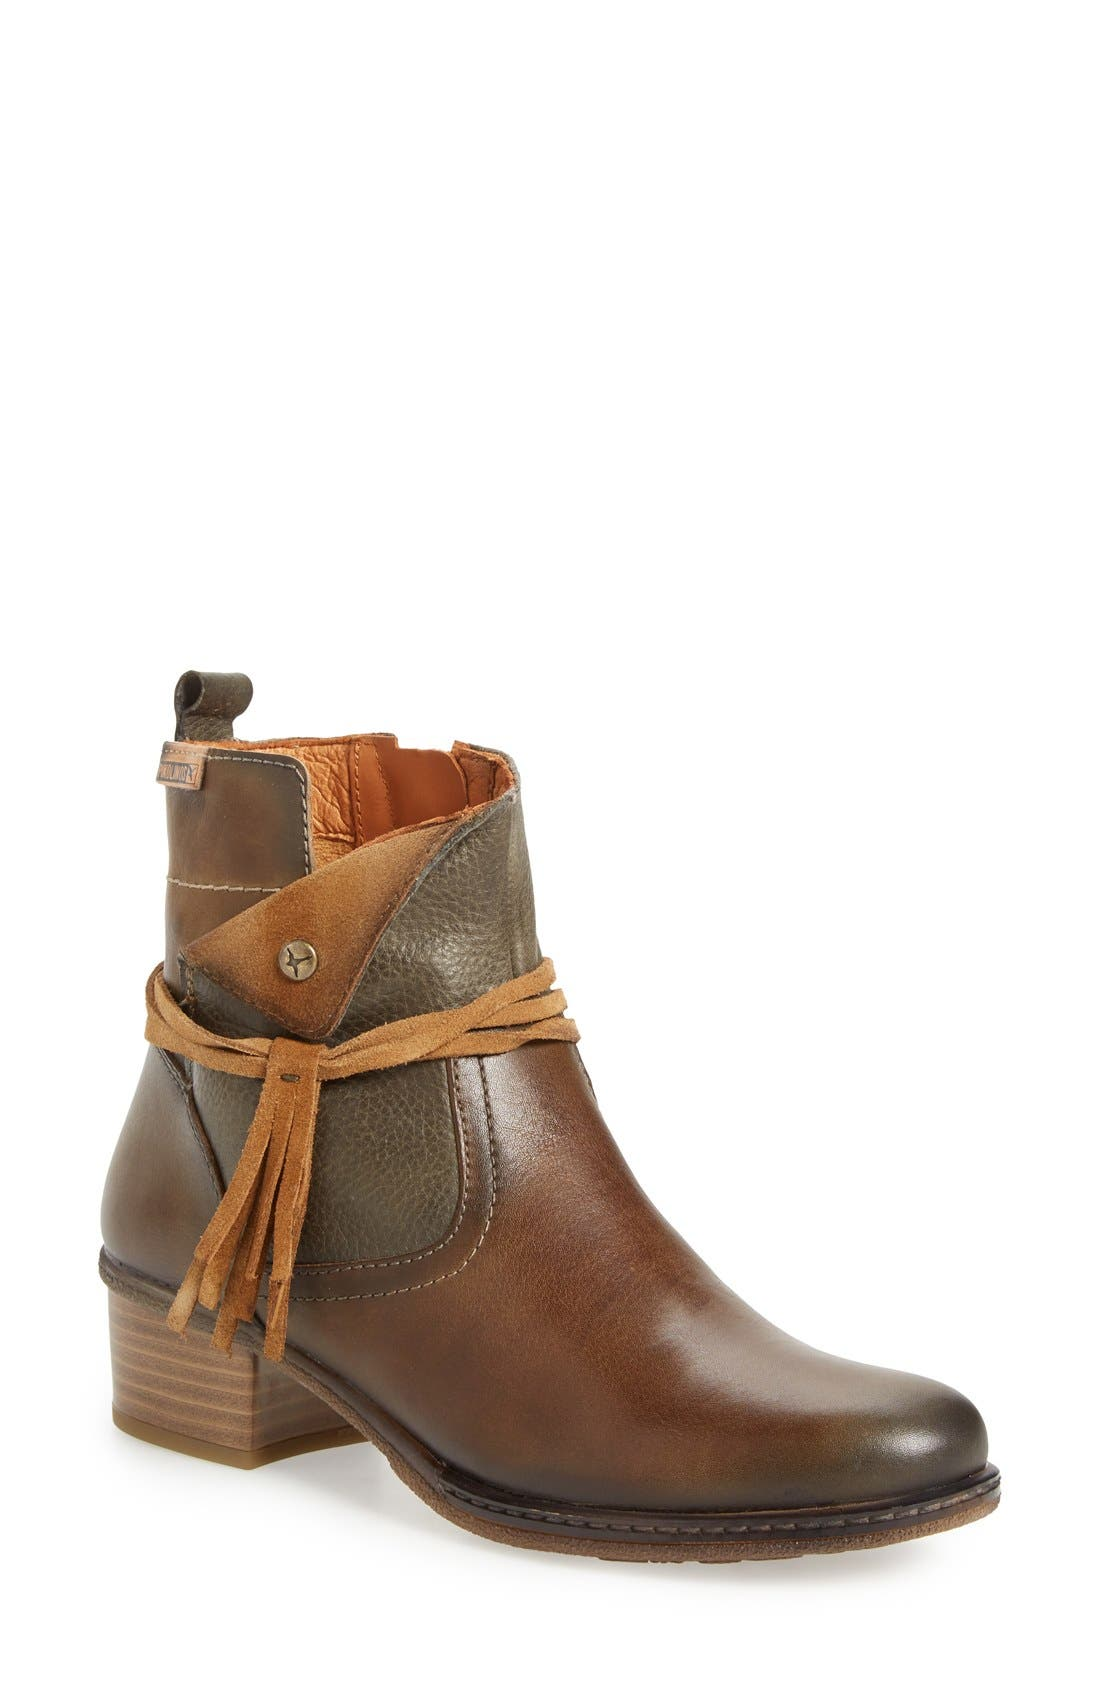 'Zaragoza' Bootie,                         Main,                         color, MOSS LEATHER